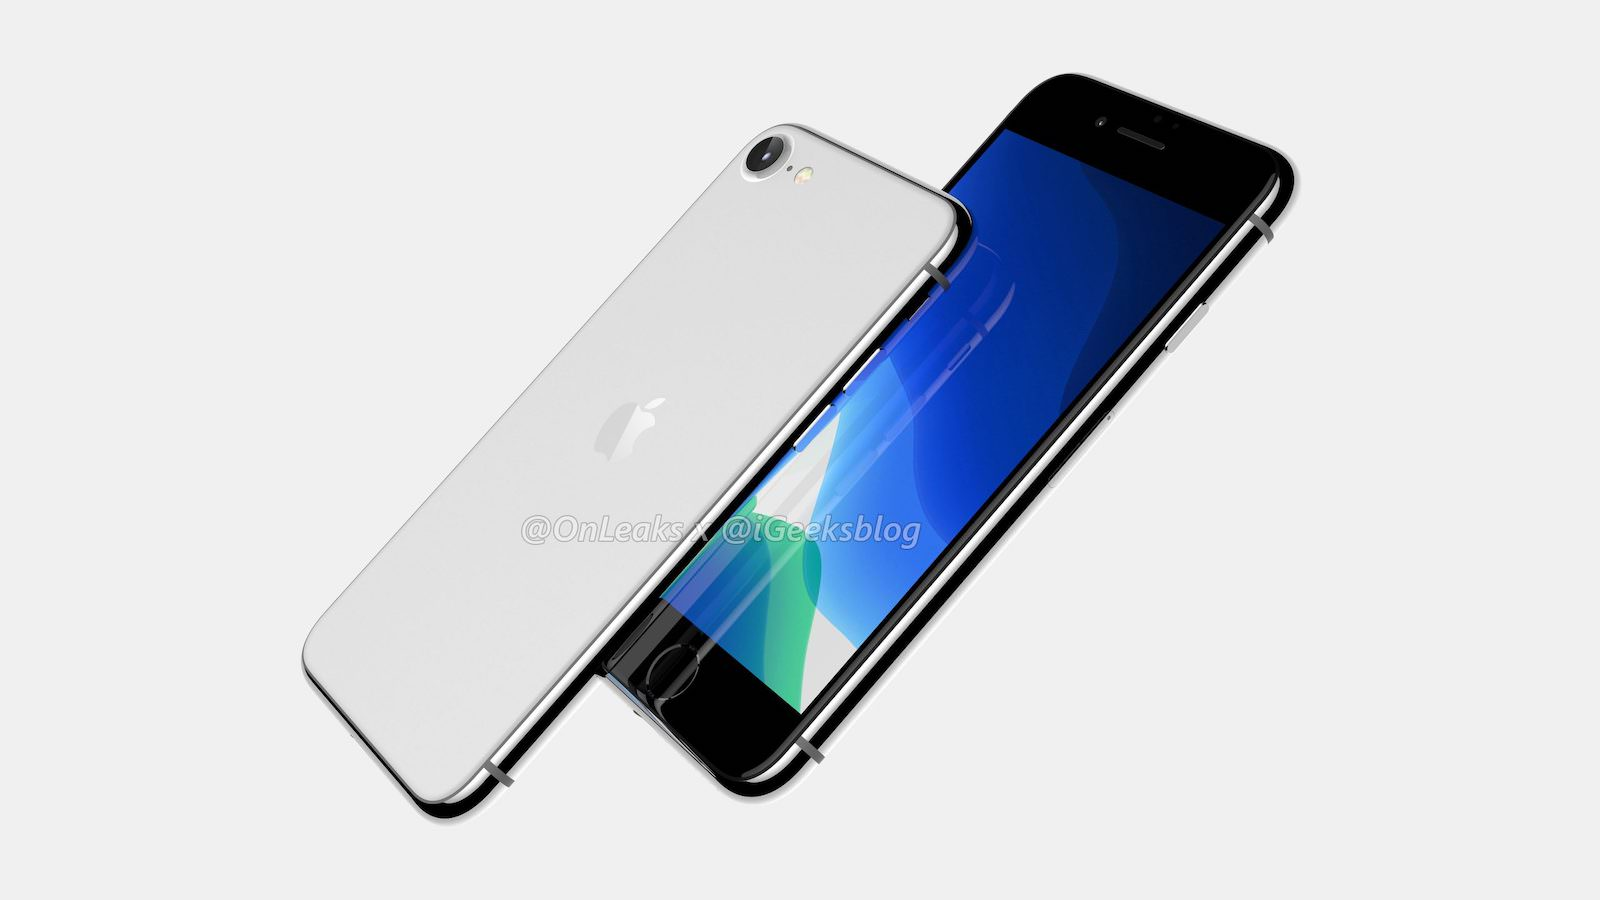 2020-iPhone-SE-2-Frosted-Glass-Back-scaled.jpg